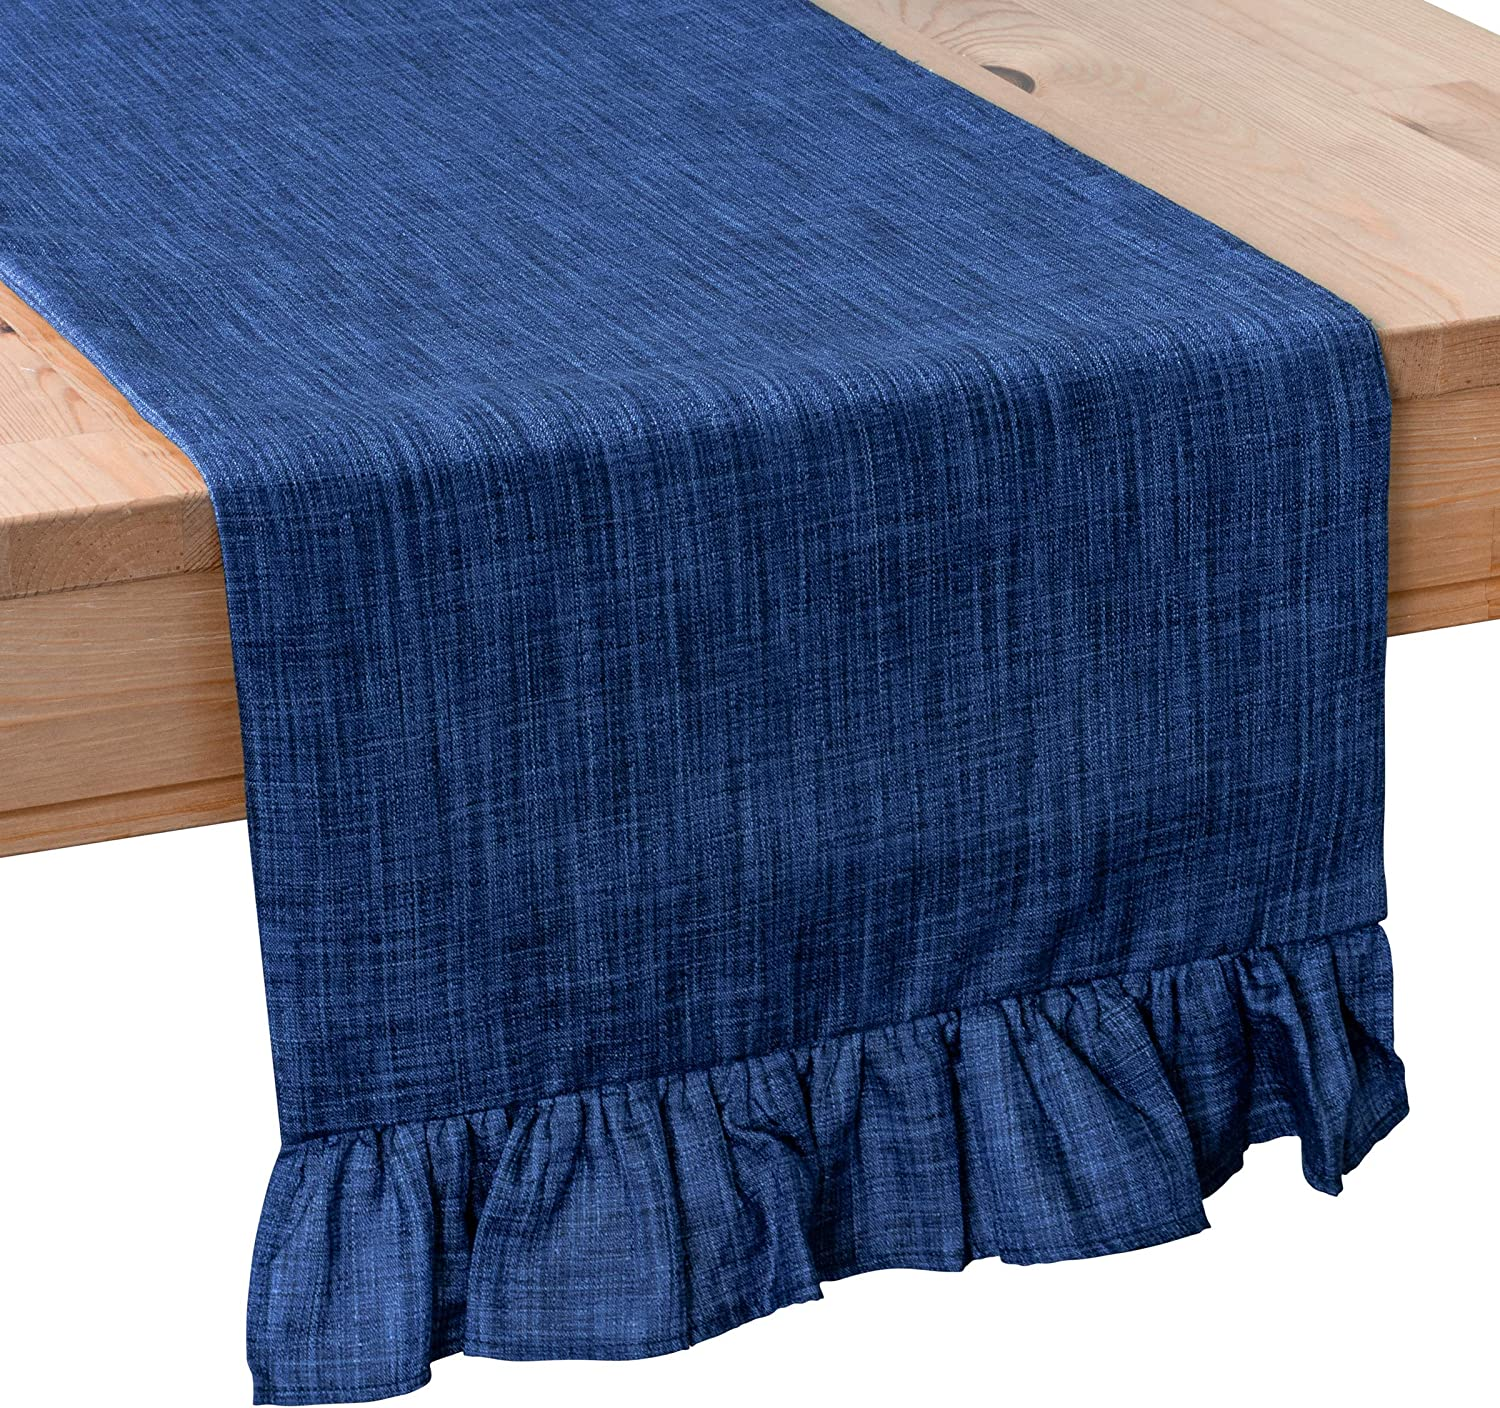 The White Petals Dark Blue Dresser Scarf Table Runners (13x48 inch, Pack of 1, Ruffles Trim) Fabric Lined | Properly Finished | for Home, Kitchen, Dining Room, Holiday, Wedding Party Décor